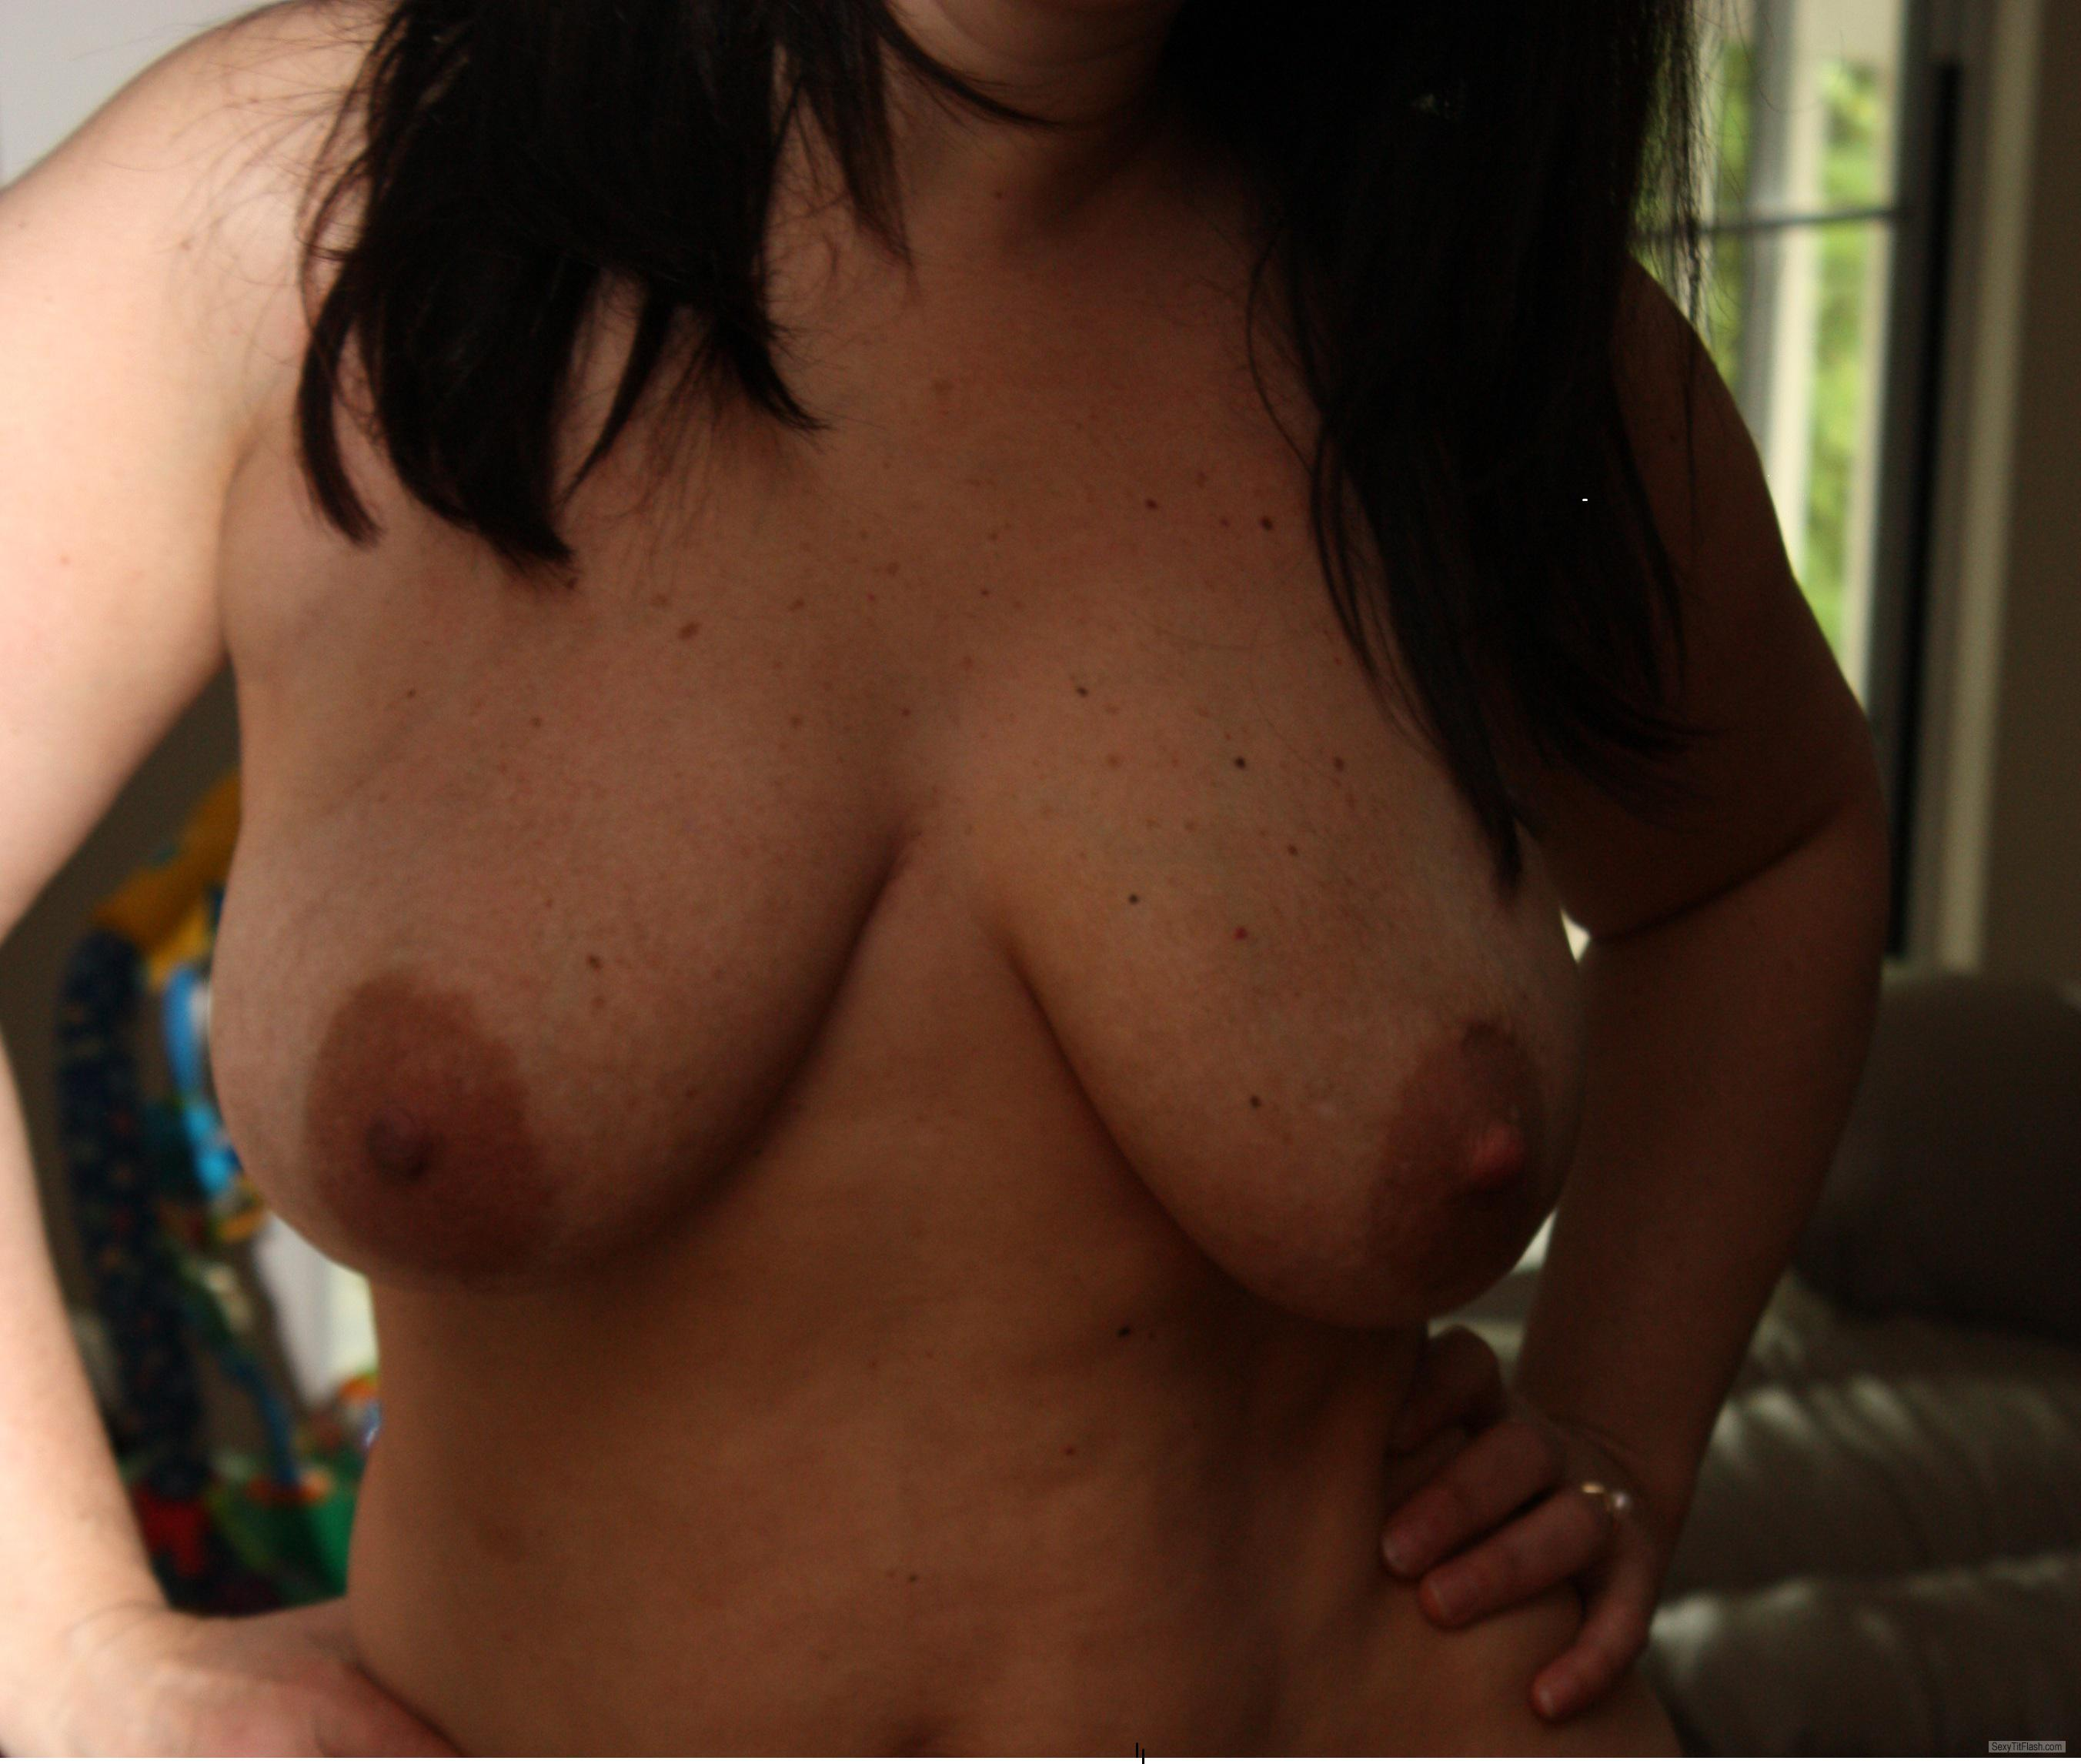 Tit Flash: My Big Tits - G.G from United States